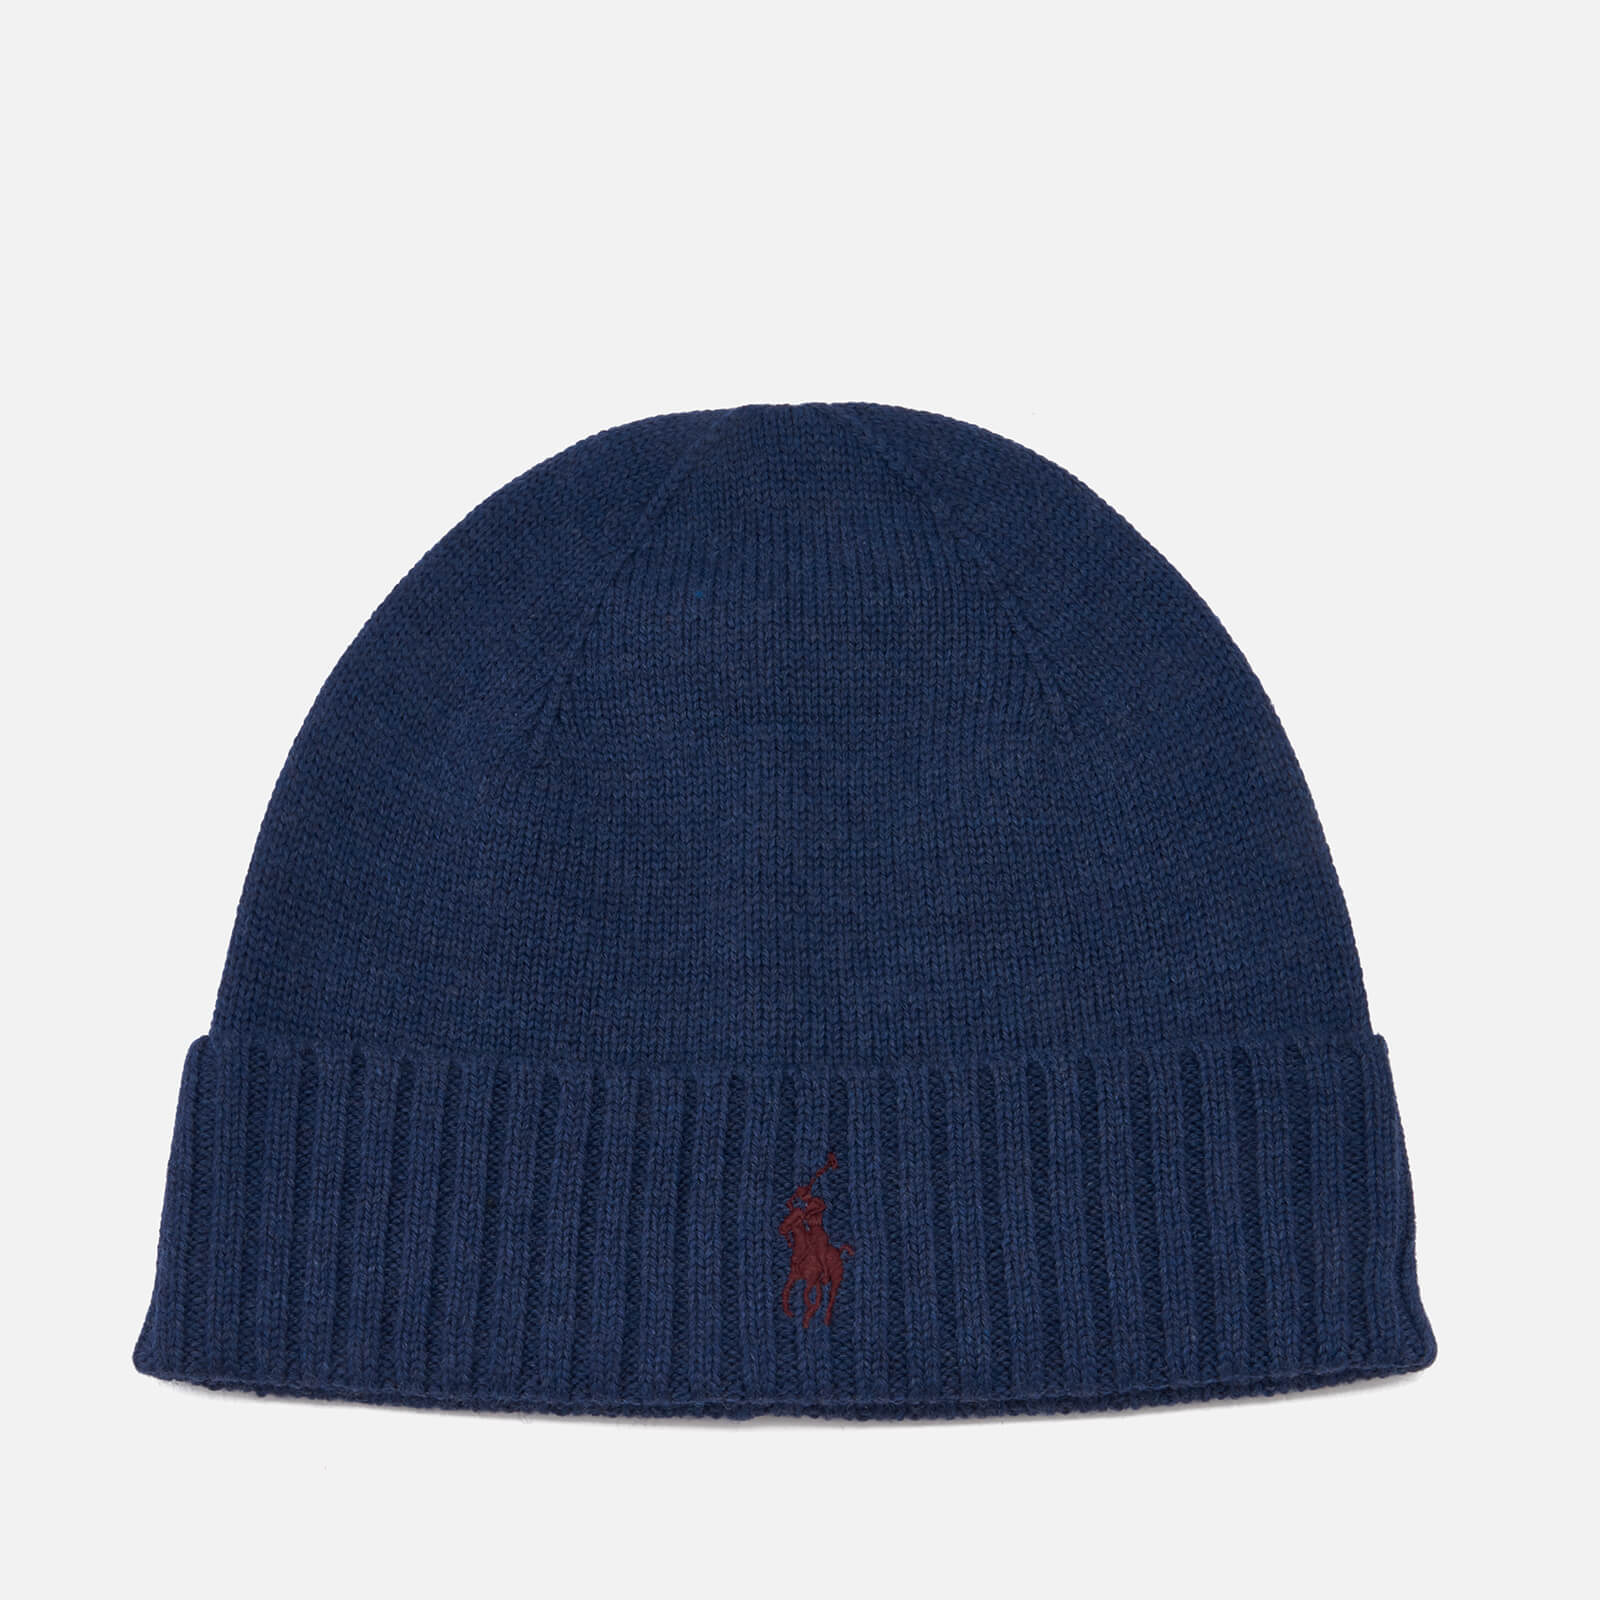 f46674f60d1 Polo Ralph Lauren Men s Merino Wool Beanie Hat - Shale Blue Heather - Free  UK Delivery over £50